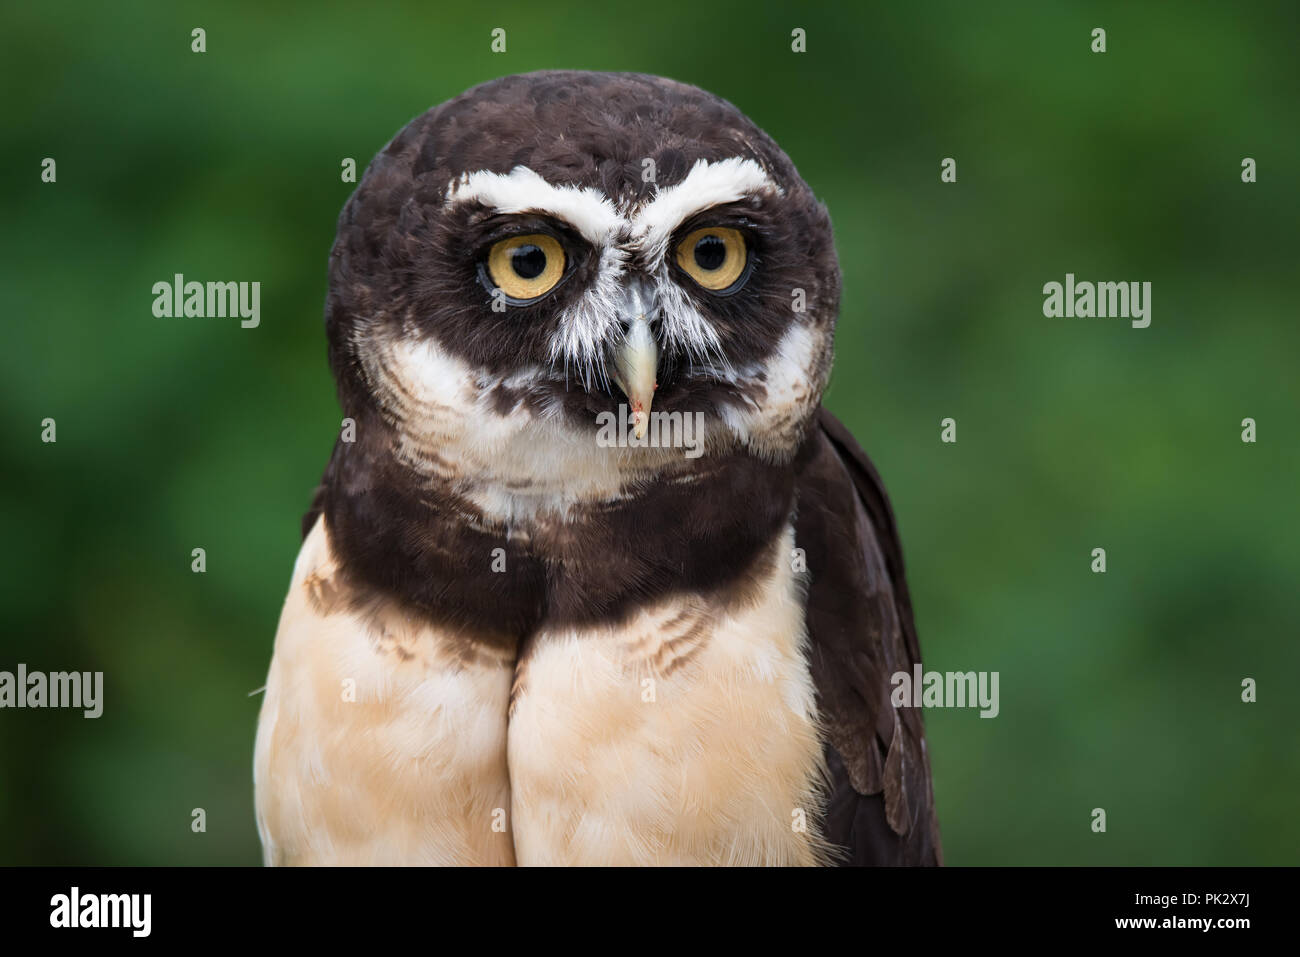 A captive Spectacled Owl at The Toronto Zoo.  Spectacled Owls are native to Central and South America. - Stock Image